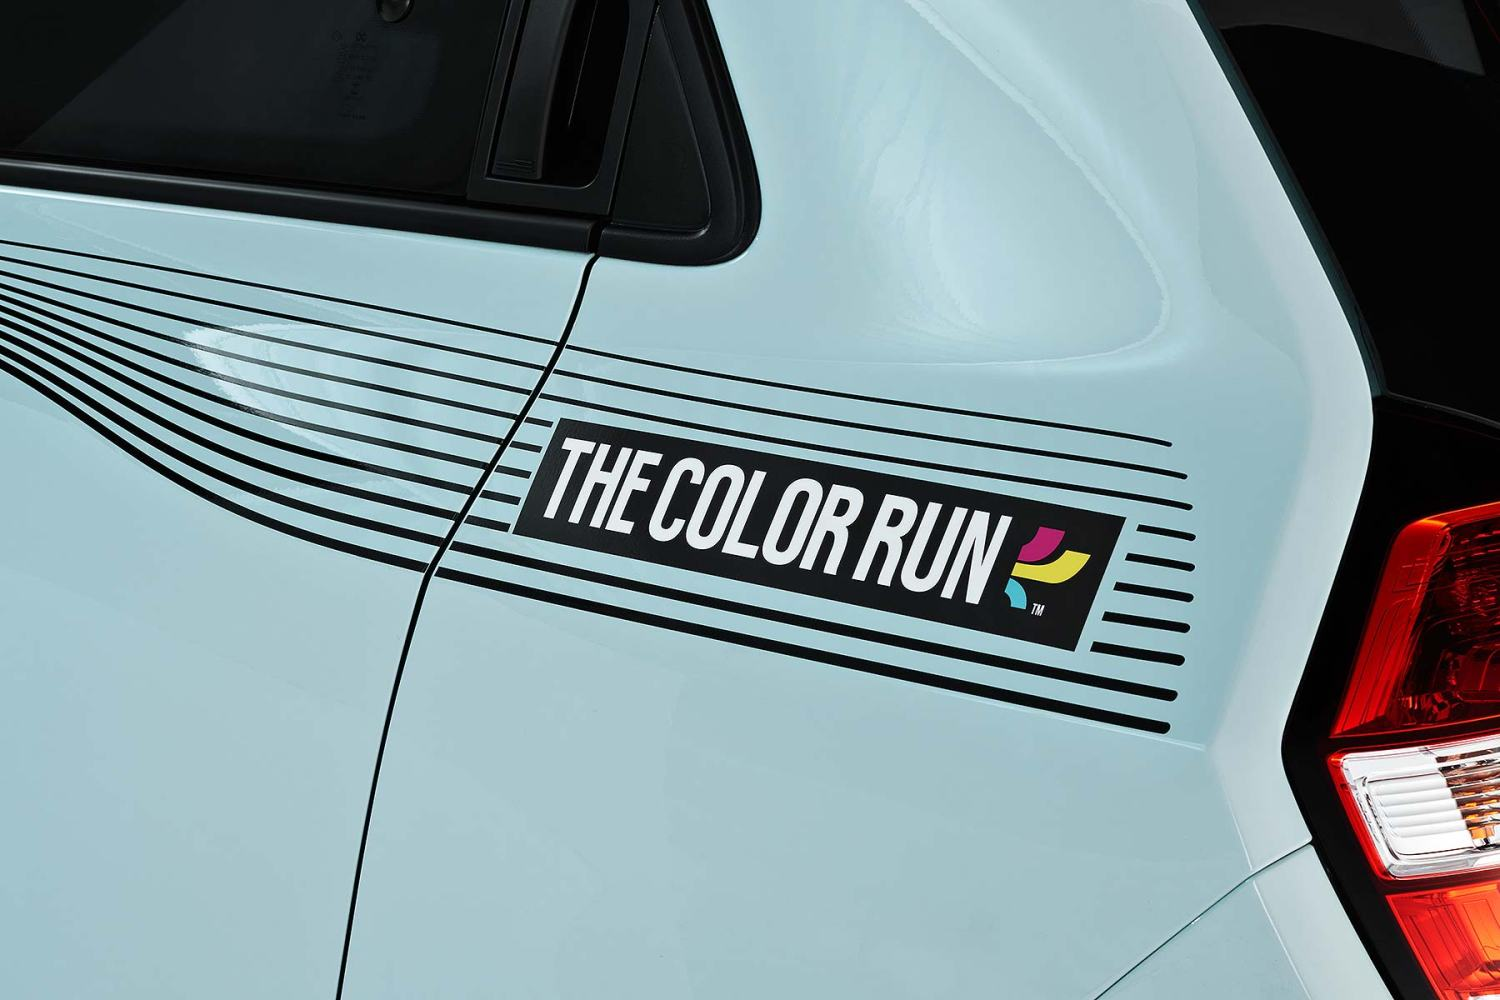 Renault Twingo Colour Run 2016